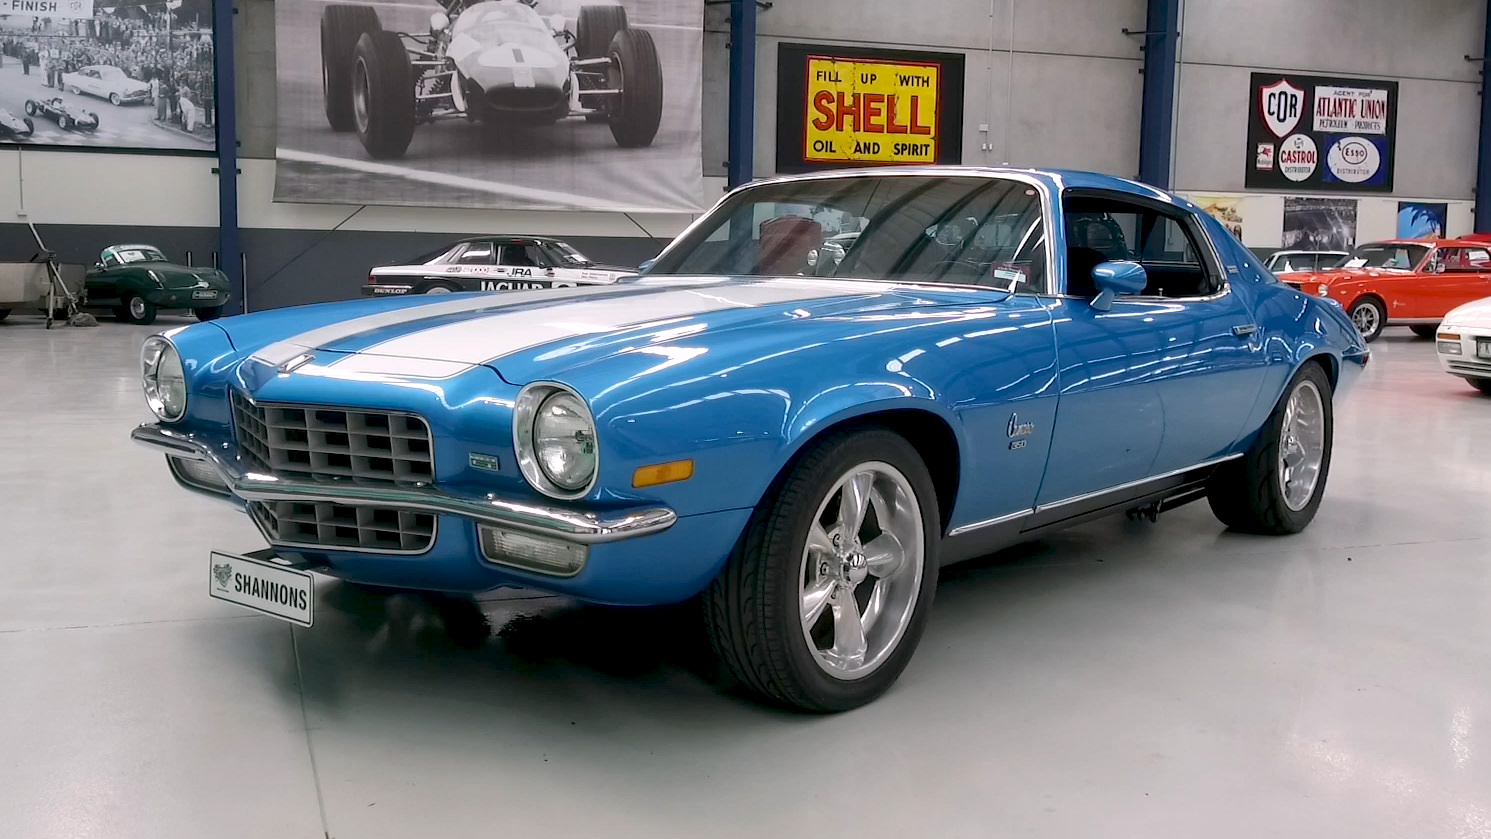 1973 Chevrolet Camaro LT Coupe (LHD) - 2021 Shannons Summer Timed Online Auction